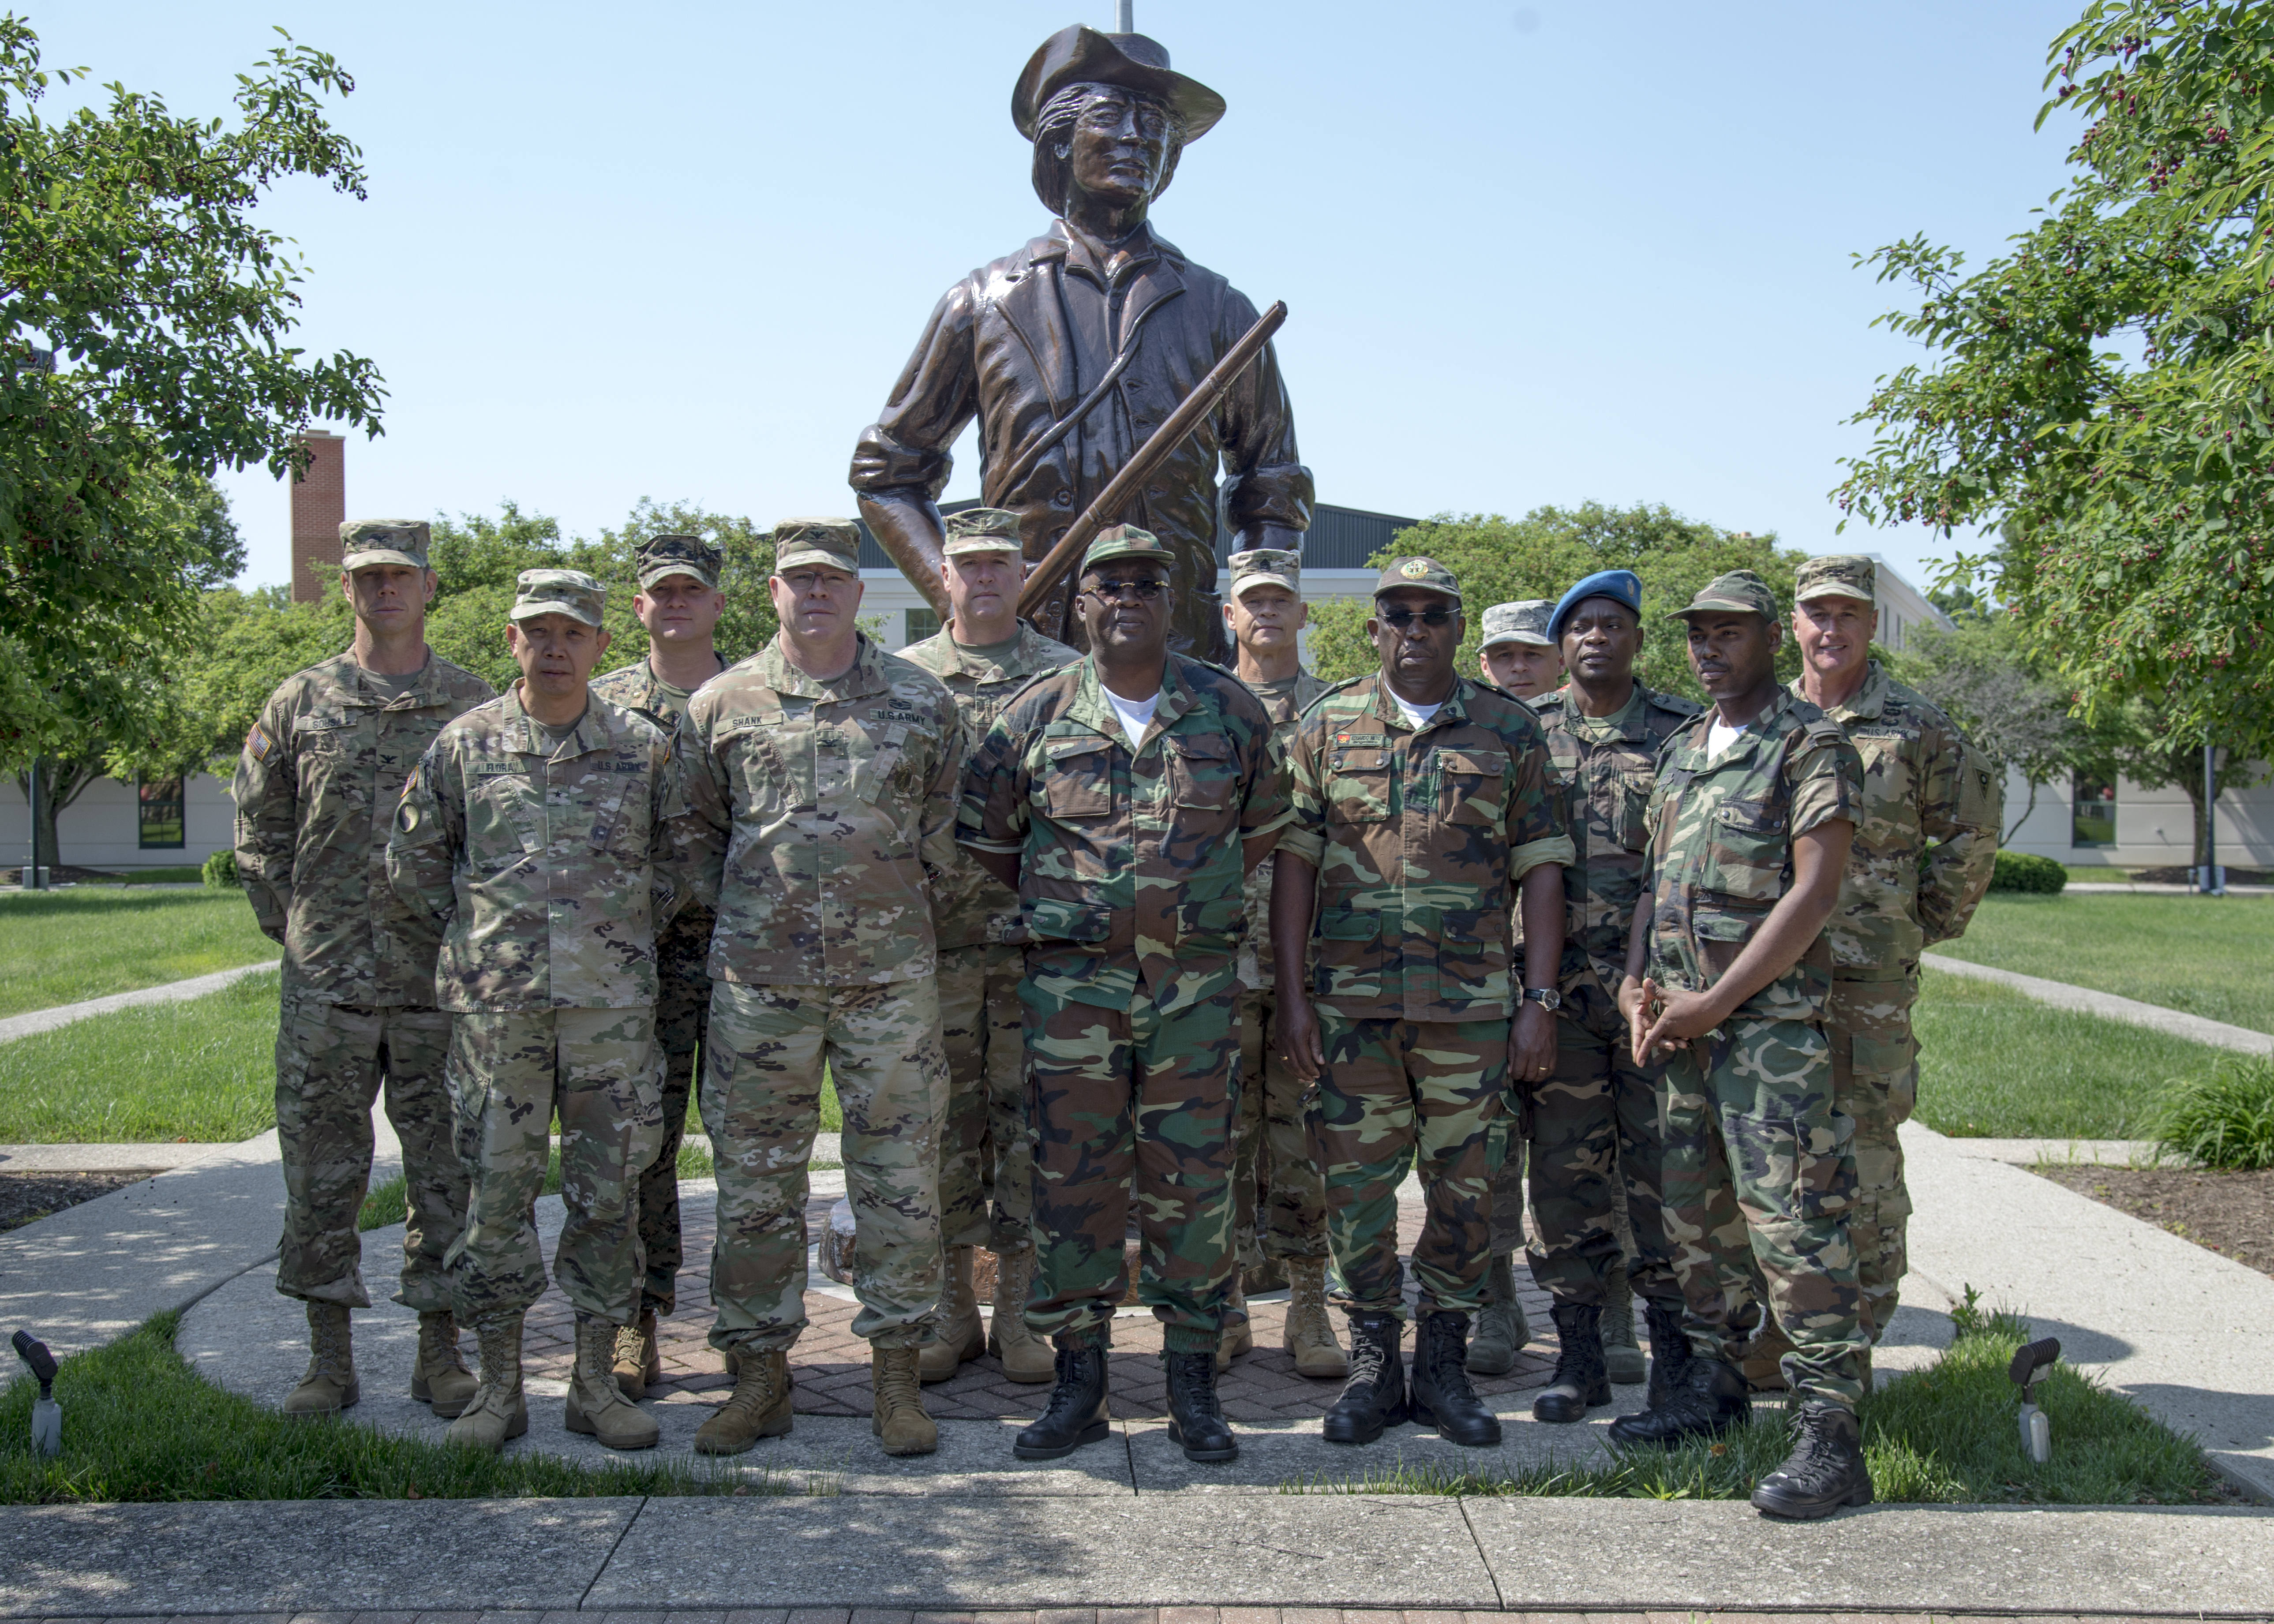 Members of an Angolan Armed Forces delegation visiting the U.S., along with their embassy and defense attachés, stand with Ohio National Guard senior leaders outside of the Joint Force Headquarters at the Maj. Gen. Robert S. Beightler Armory in Columbus, Ohio, June 4, 2019. The State Partnership Program hosted the delegation at the request of U.S. Army Africa, enabling meetings and discussions between Angolan military and Ohio National Guard leadership.